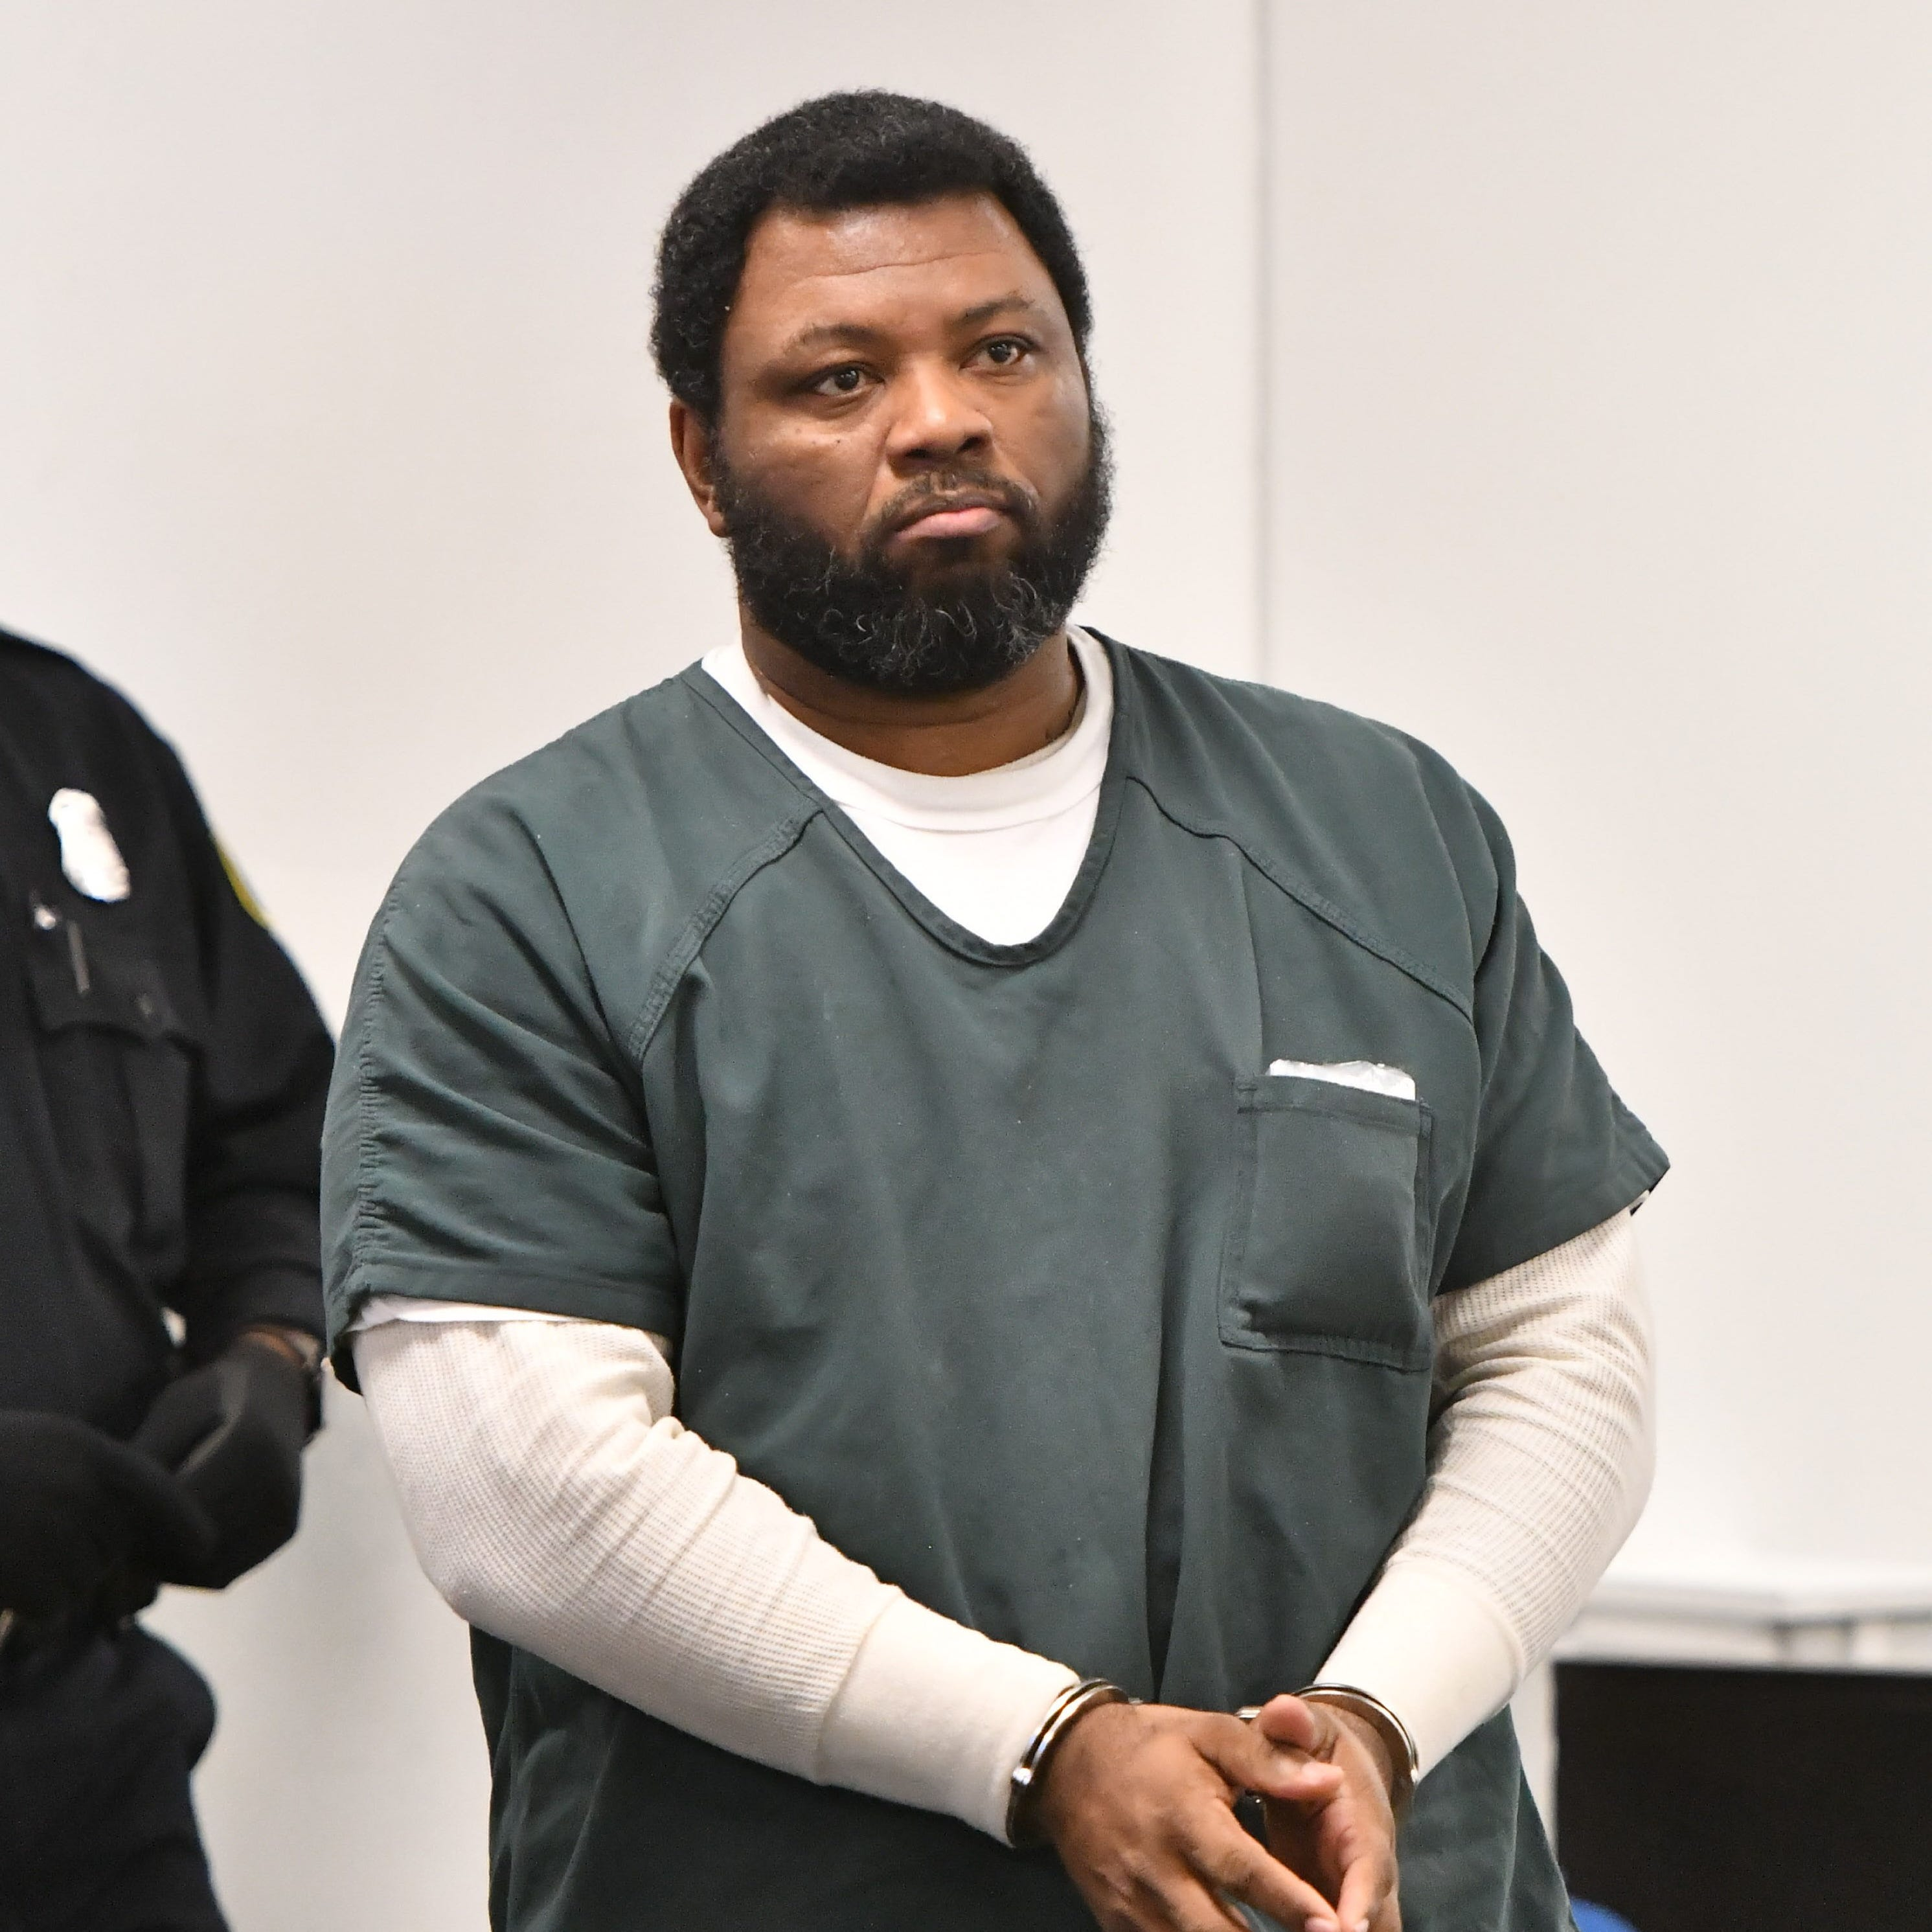 Sex worker says pastor charged in Detroit slaying was a customer